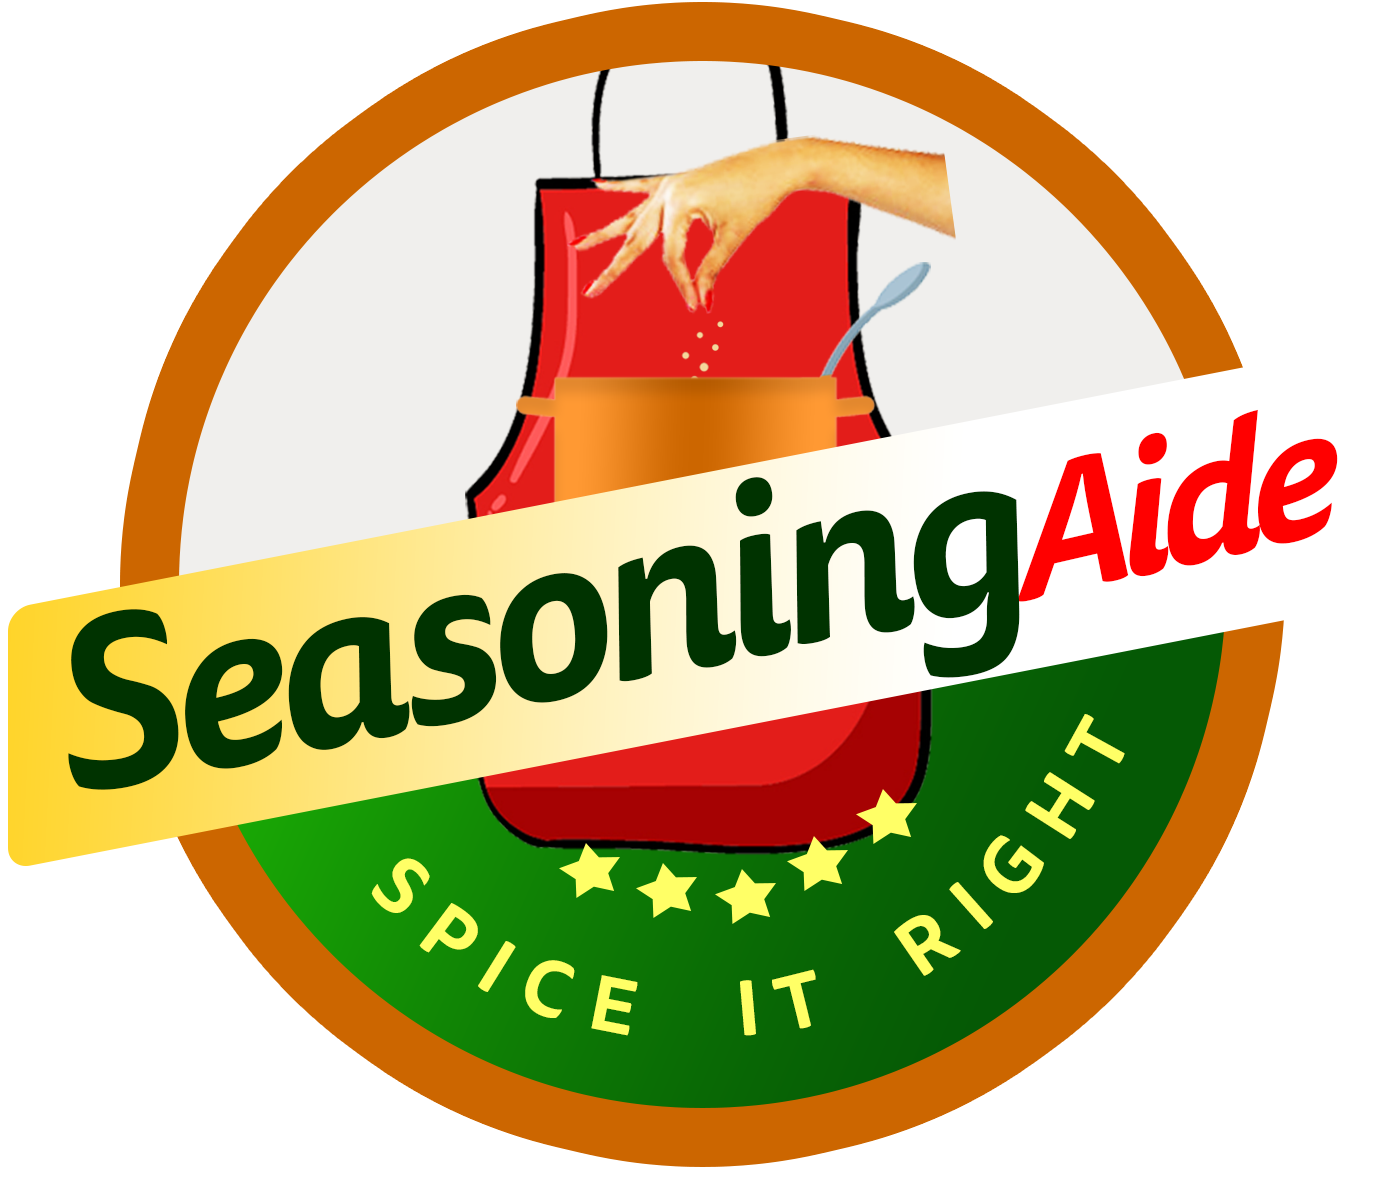 Seasoning Aide